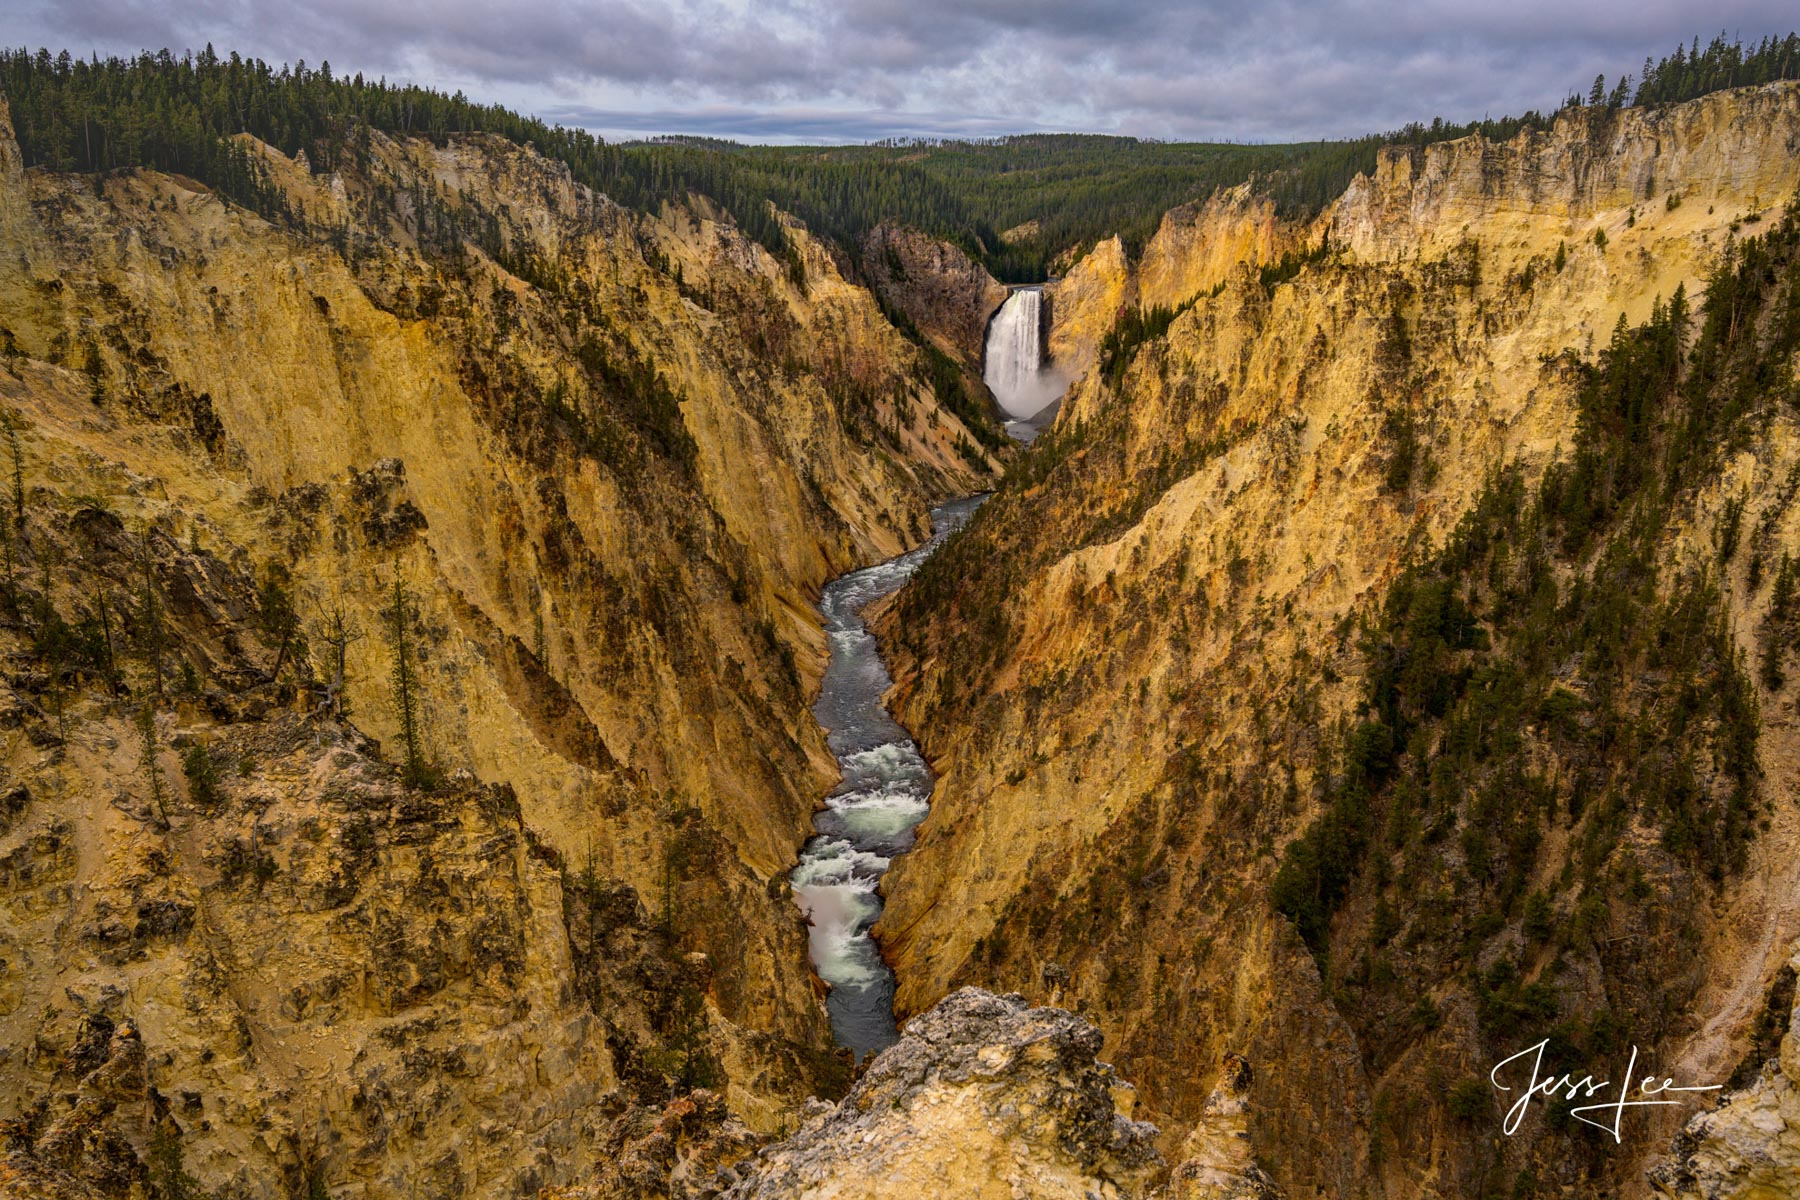 Limited Edition of 50 Exclusive high-resolution Museum Quality Fine Art Prints of the awesome Grand Canyon of the Yellowstone...